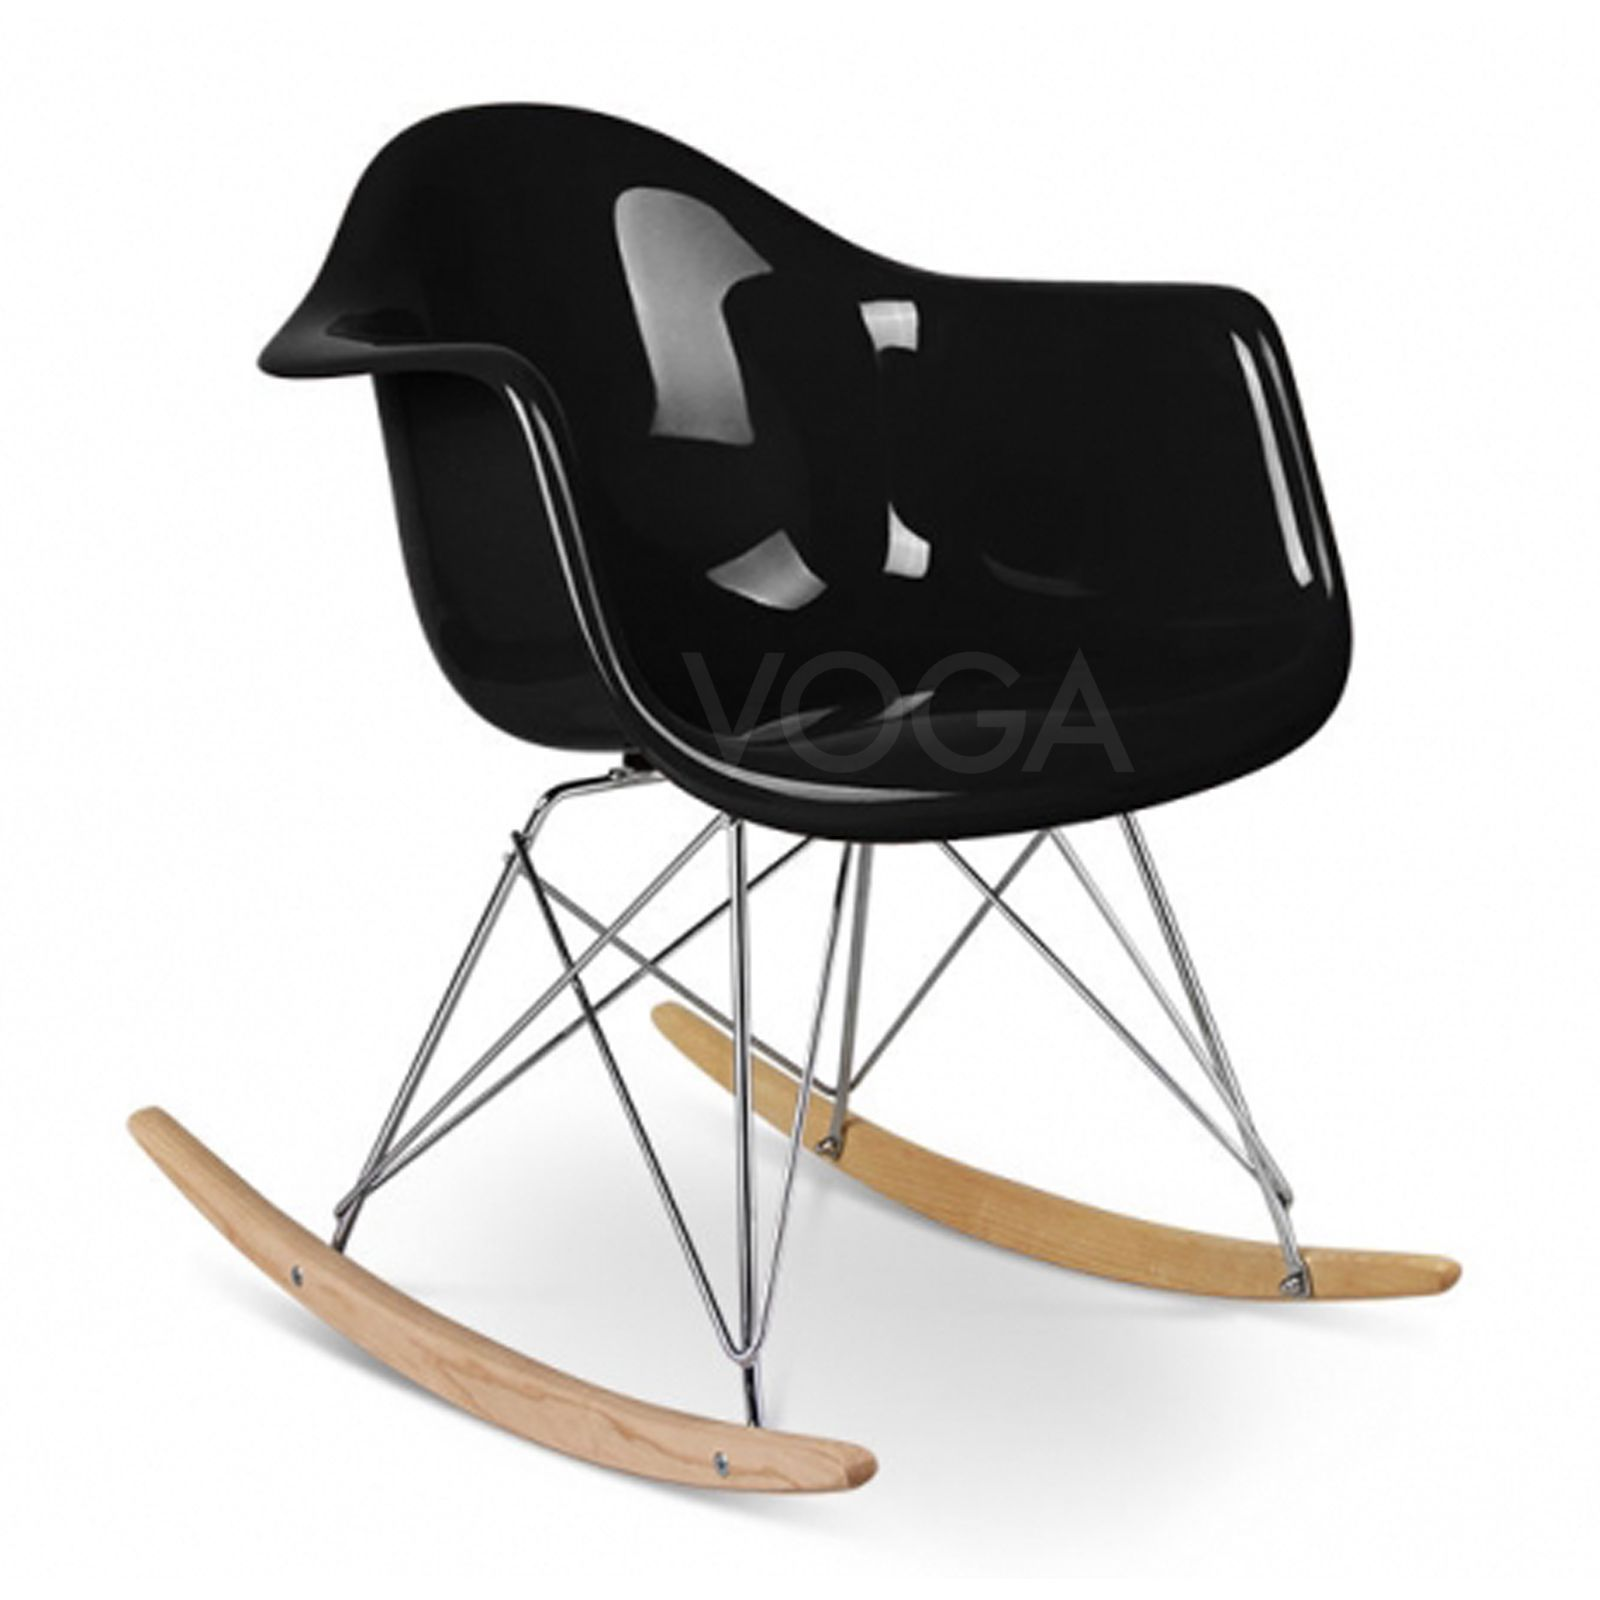 Astounding Eames Kids Rar Rocking Chair Replica Furniture Voga Gmtry Best Dining Table And Chair Ideas Images Gmtryco